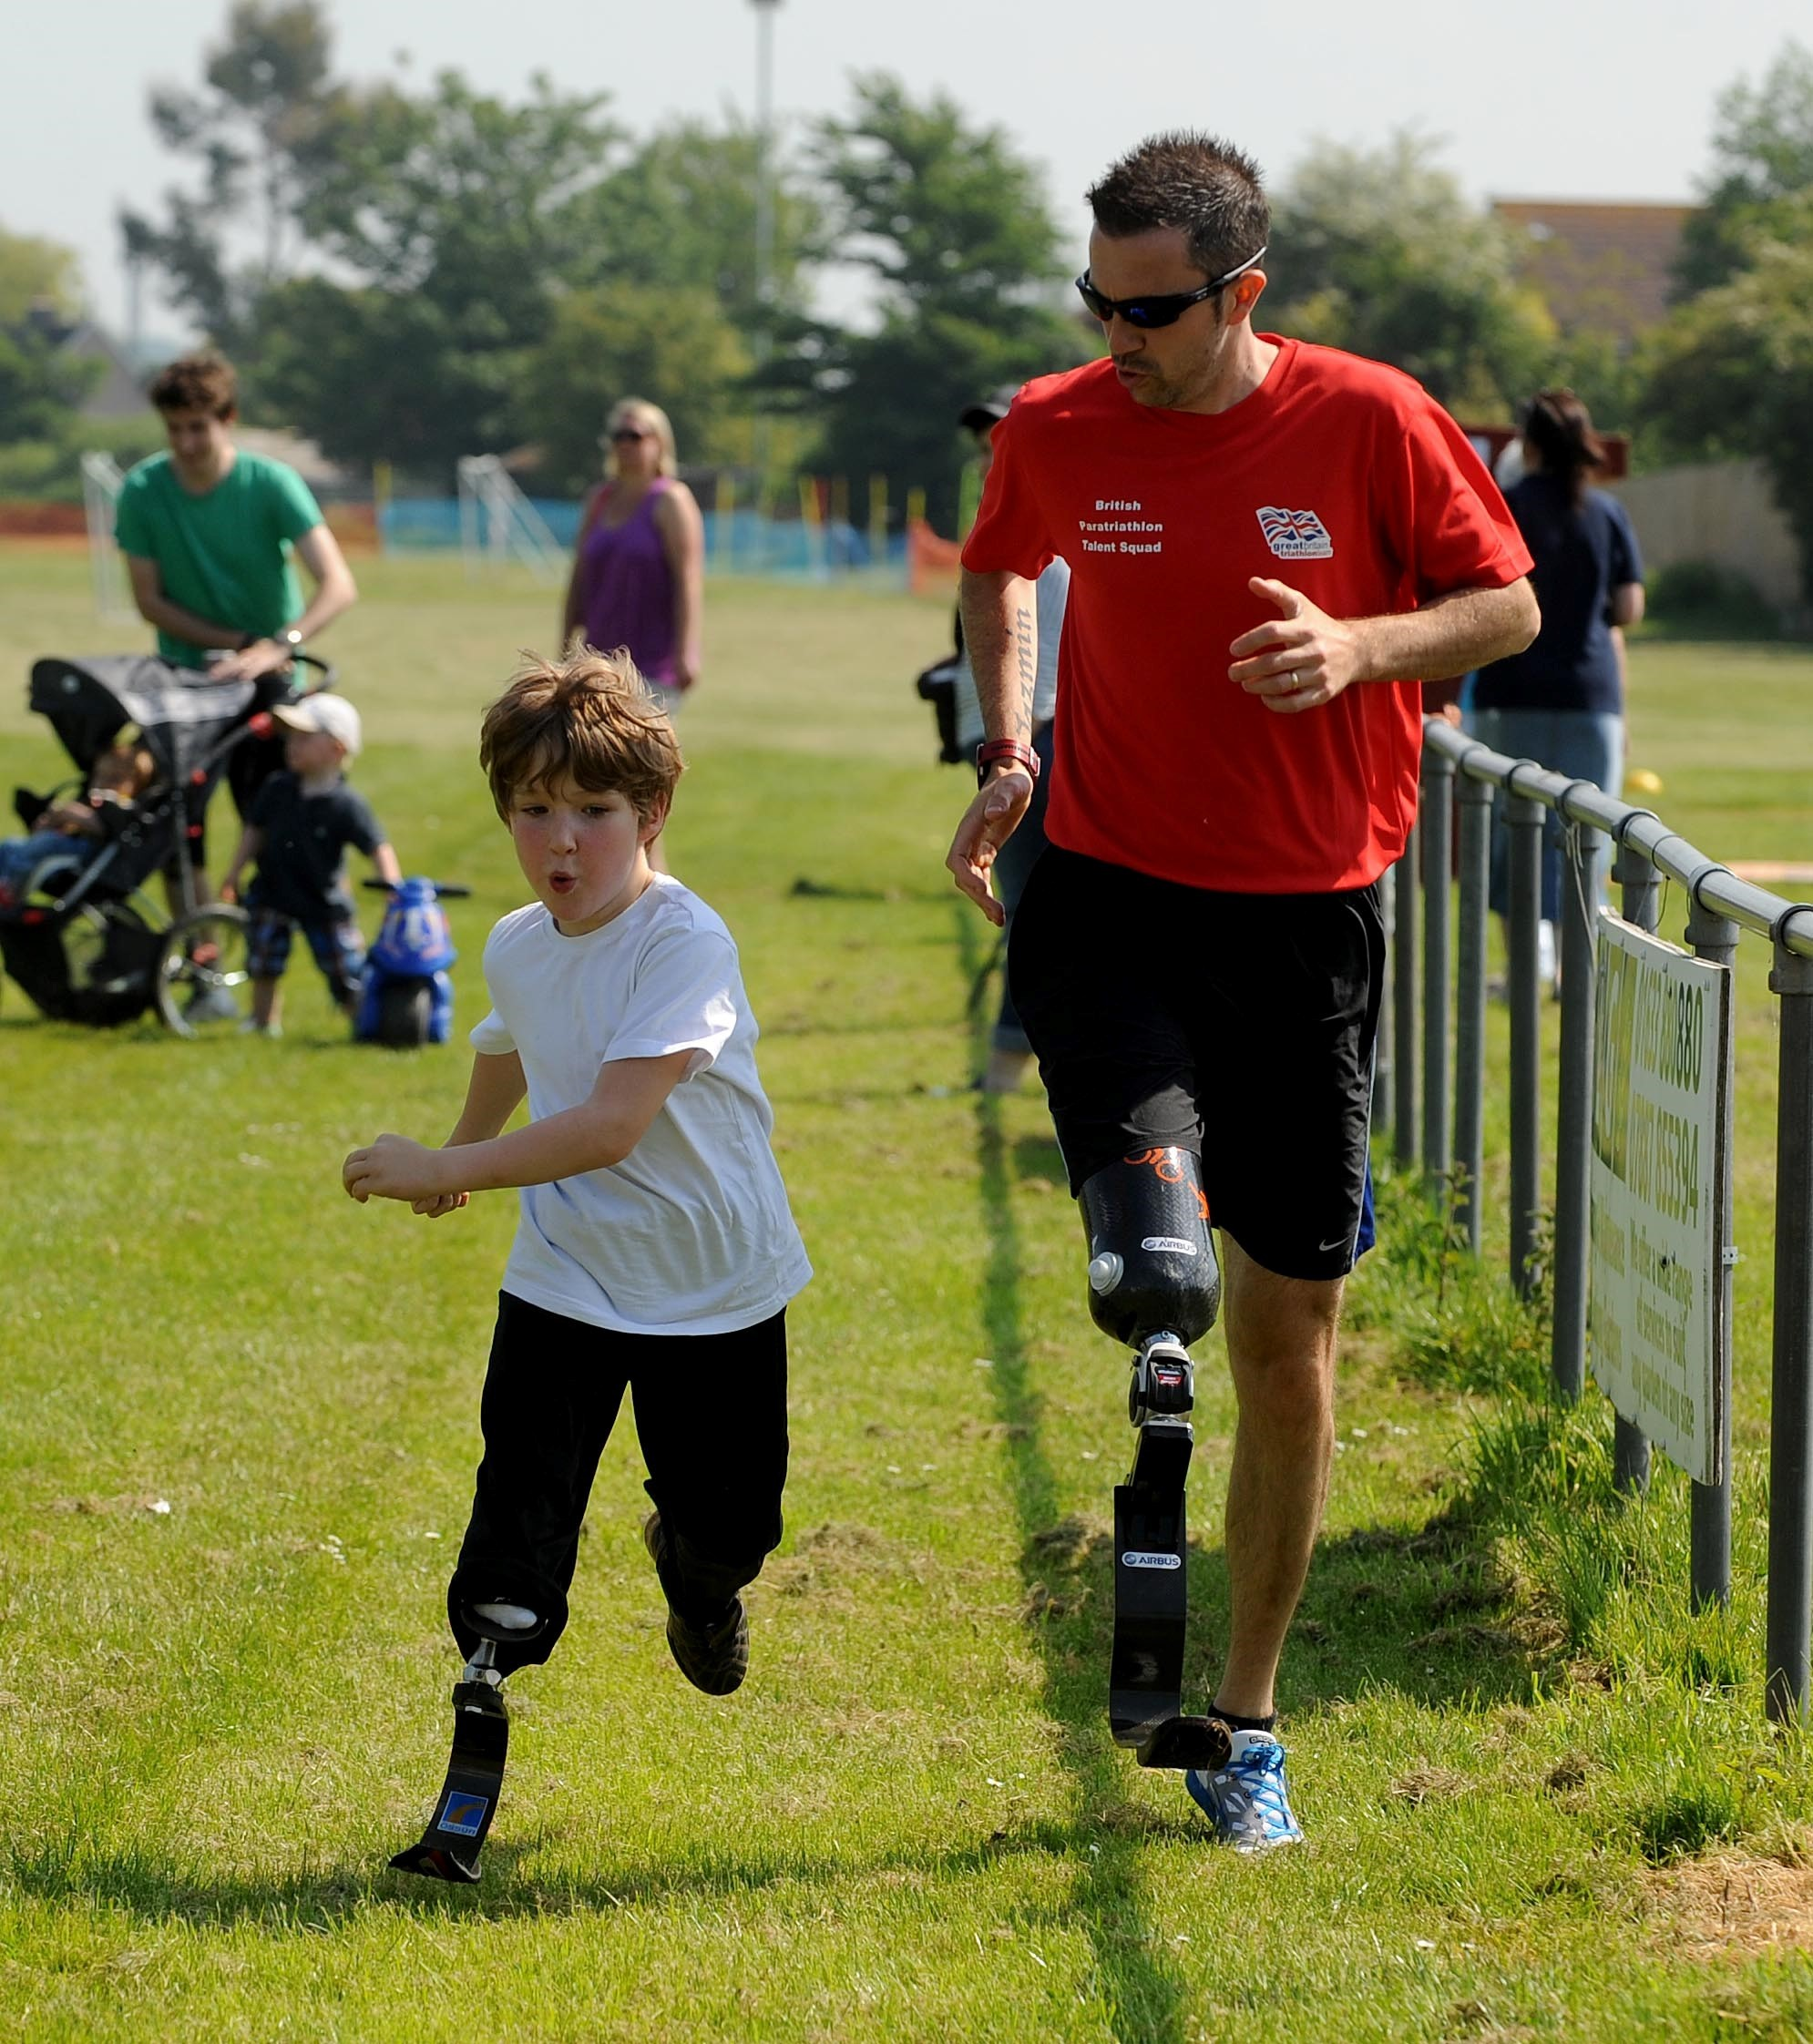 Monmouth bladerunner, six, finishes his first ever race at Undy fun run